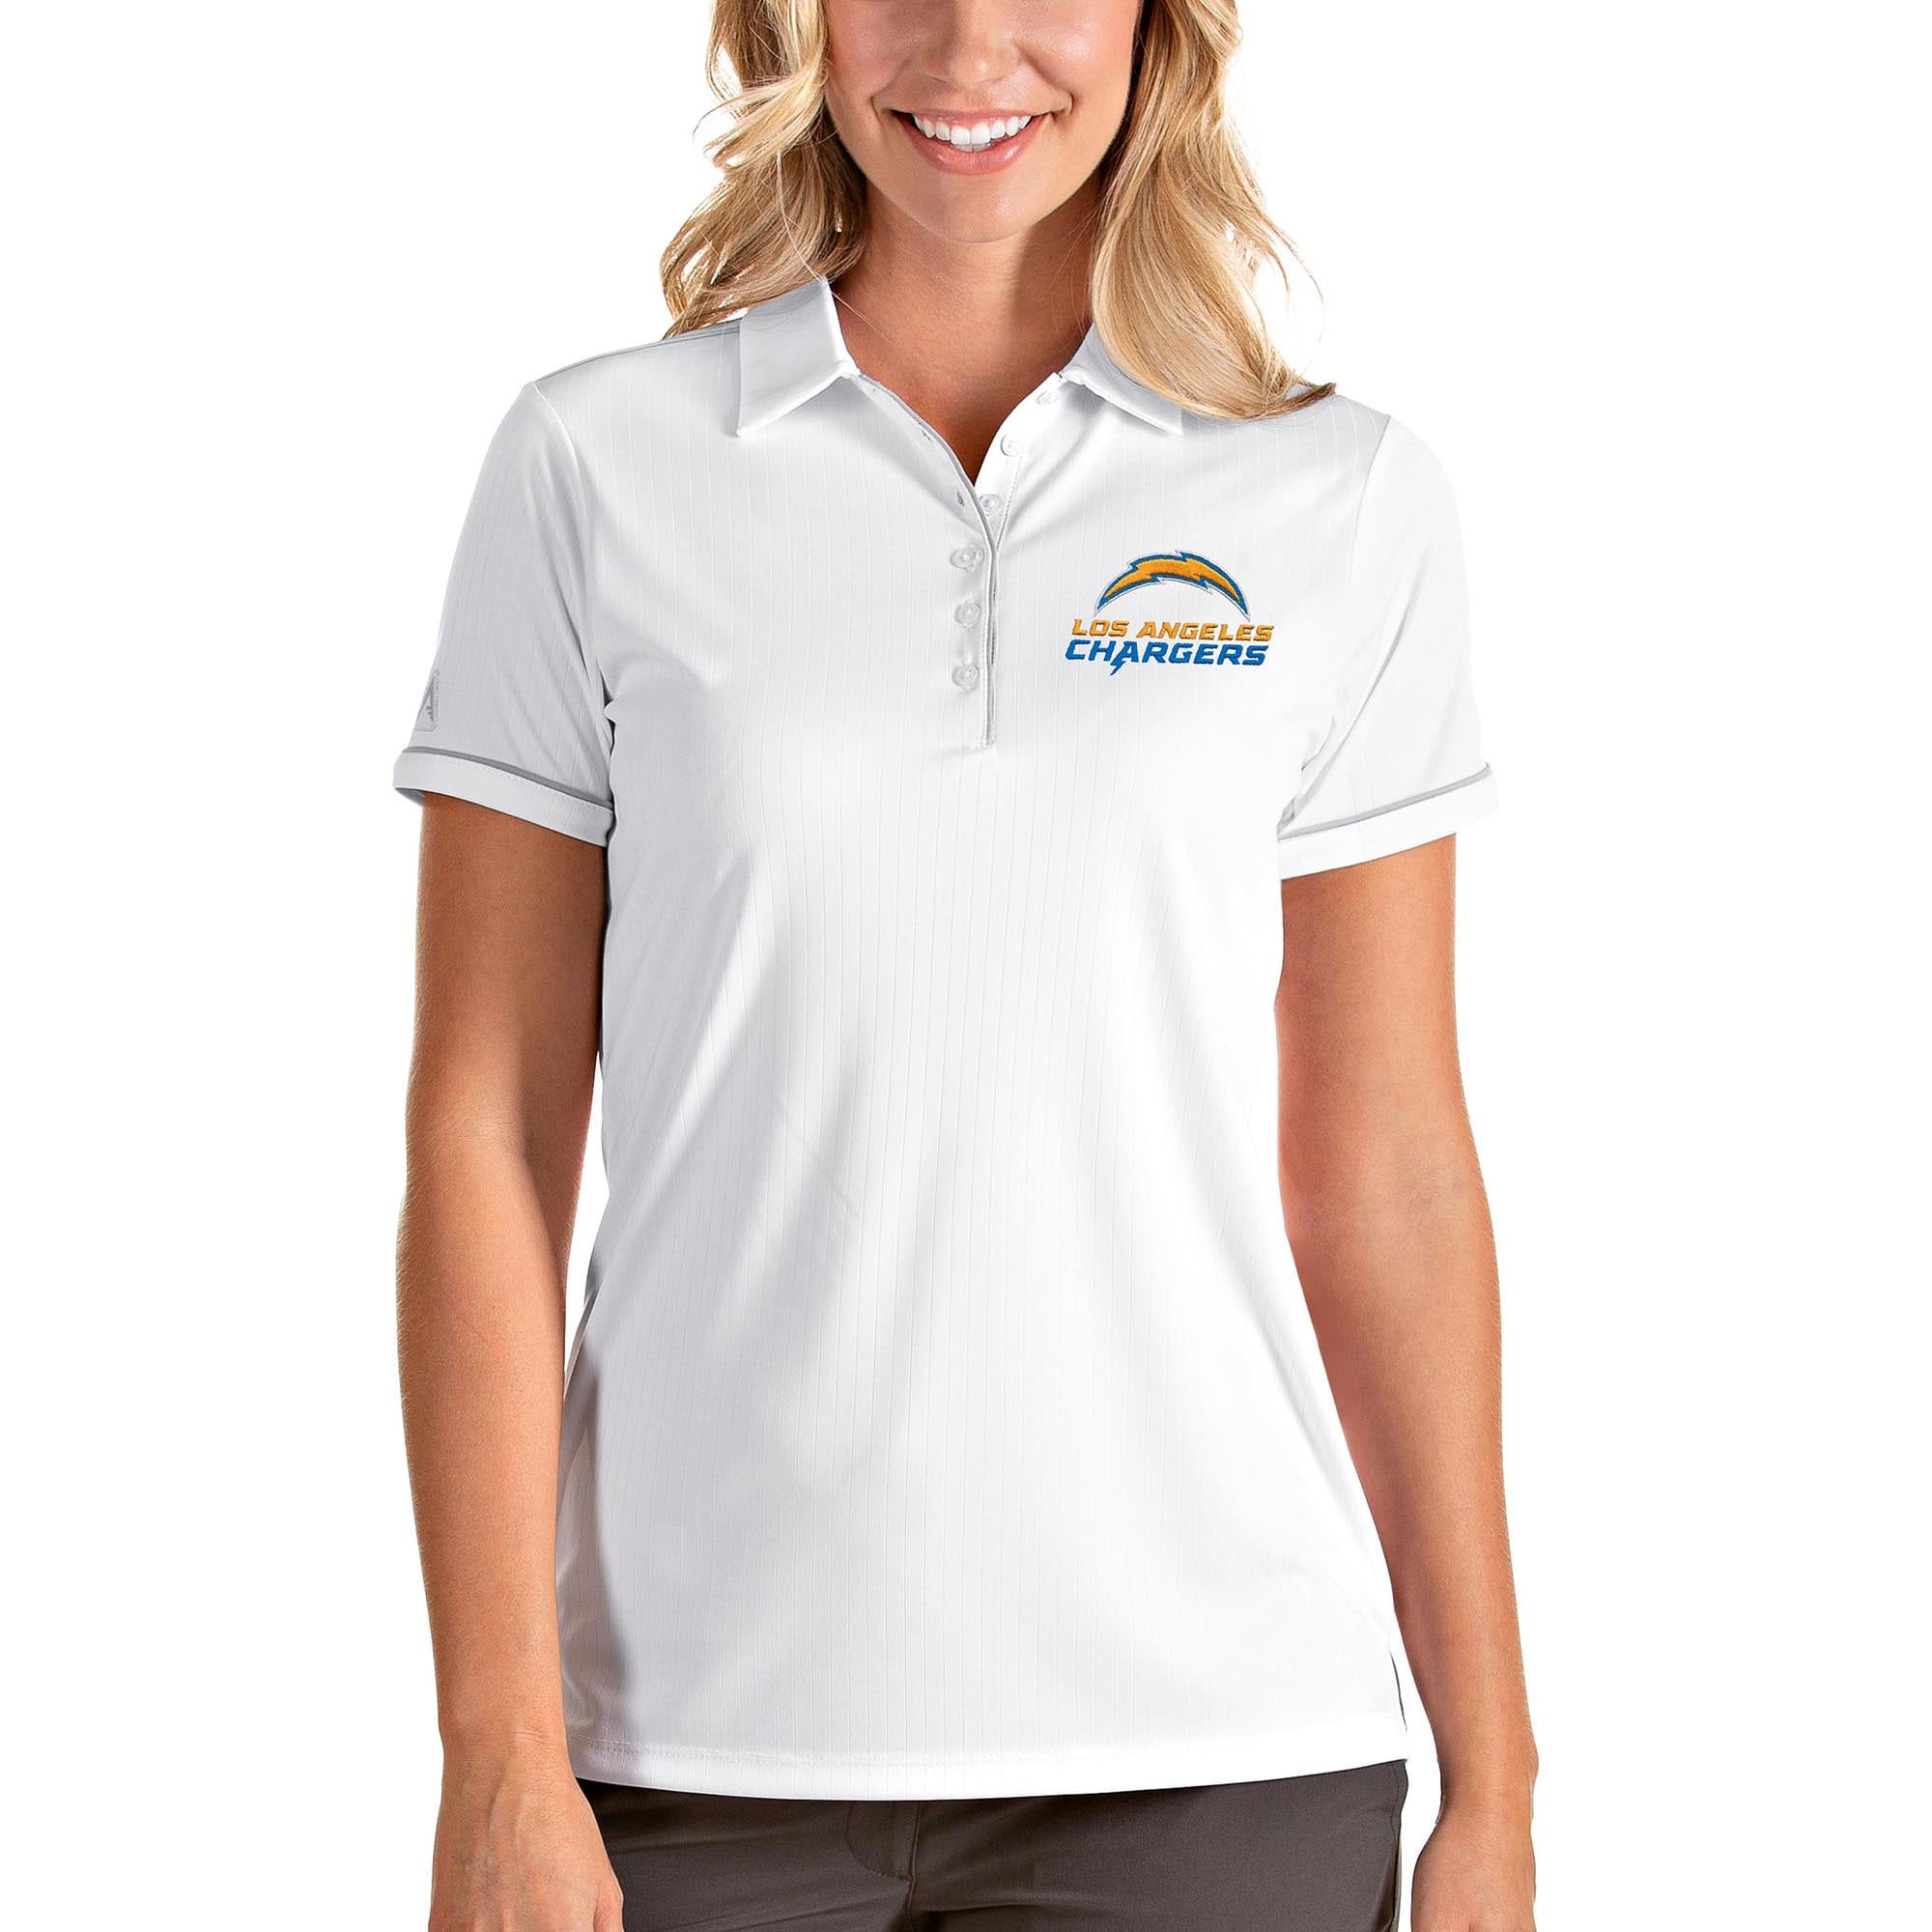 Los Angeles Chargers Antigua Women's Team Salute Polo - White